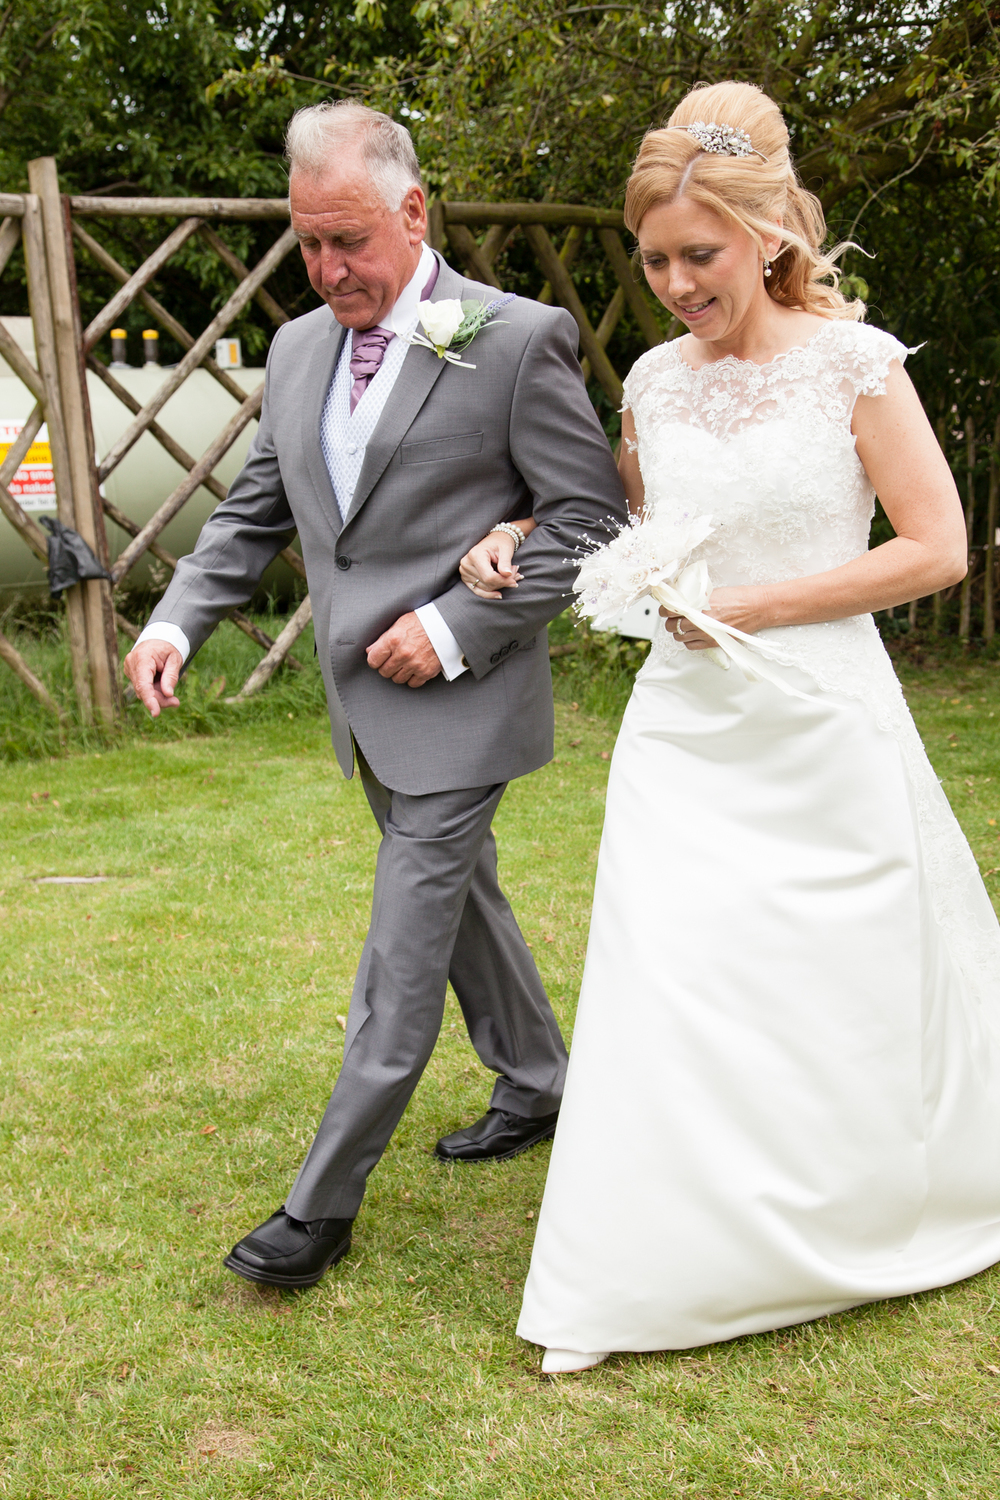 110715_LisaCraigJohnson_Wedding_5595187_WebWM.jpg